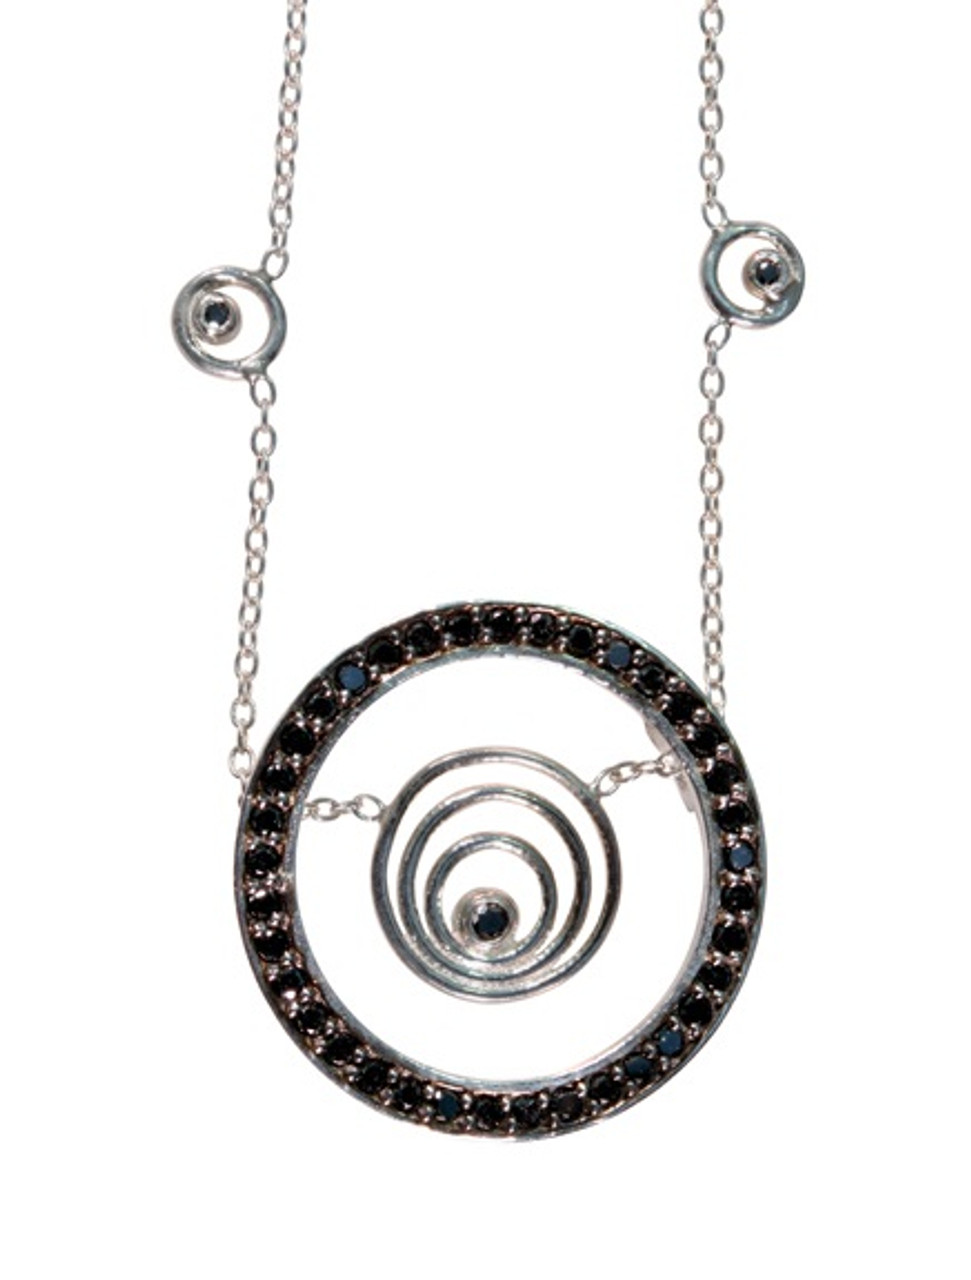 Karma hoop necklace- large- sterling silver with black diamonds